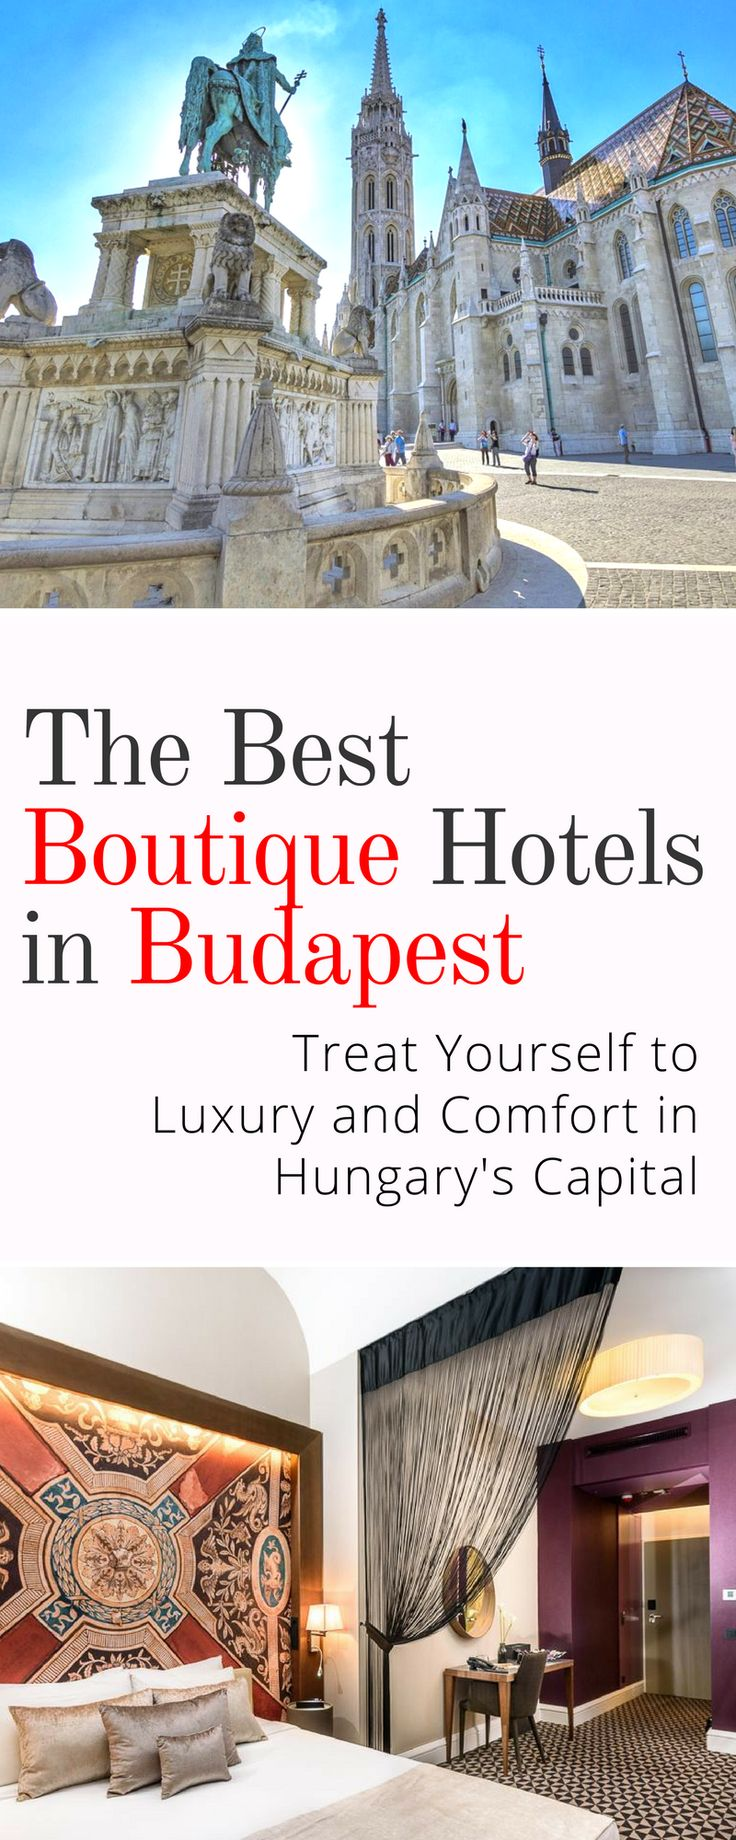 Best Boutique Hotels in Budapest: Budapest has accommodation options galore so you won't have trouble finding something to suit your budget. We've compiled a list of some of the best boutique hotels in Budapest to help you out, so check them out and enjoy your stay in Hungary's capital city!